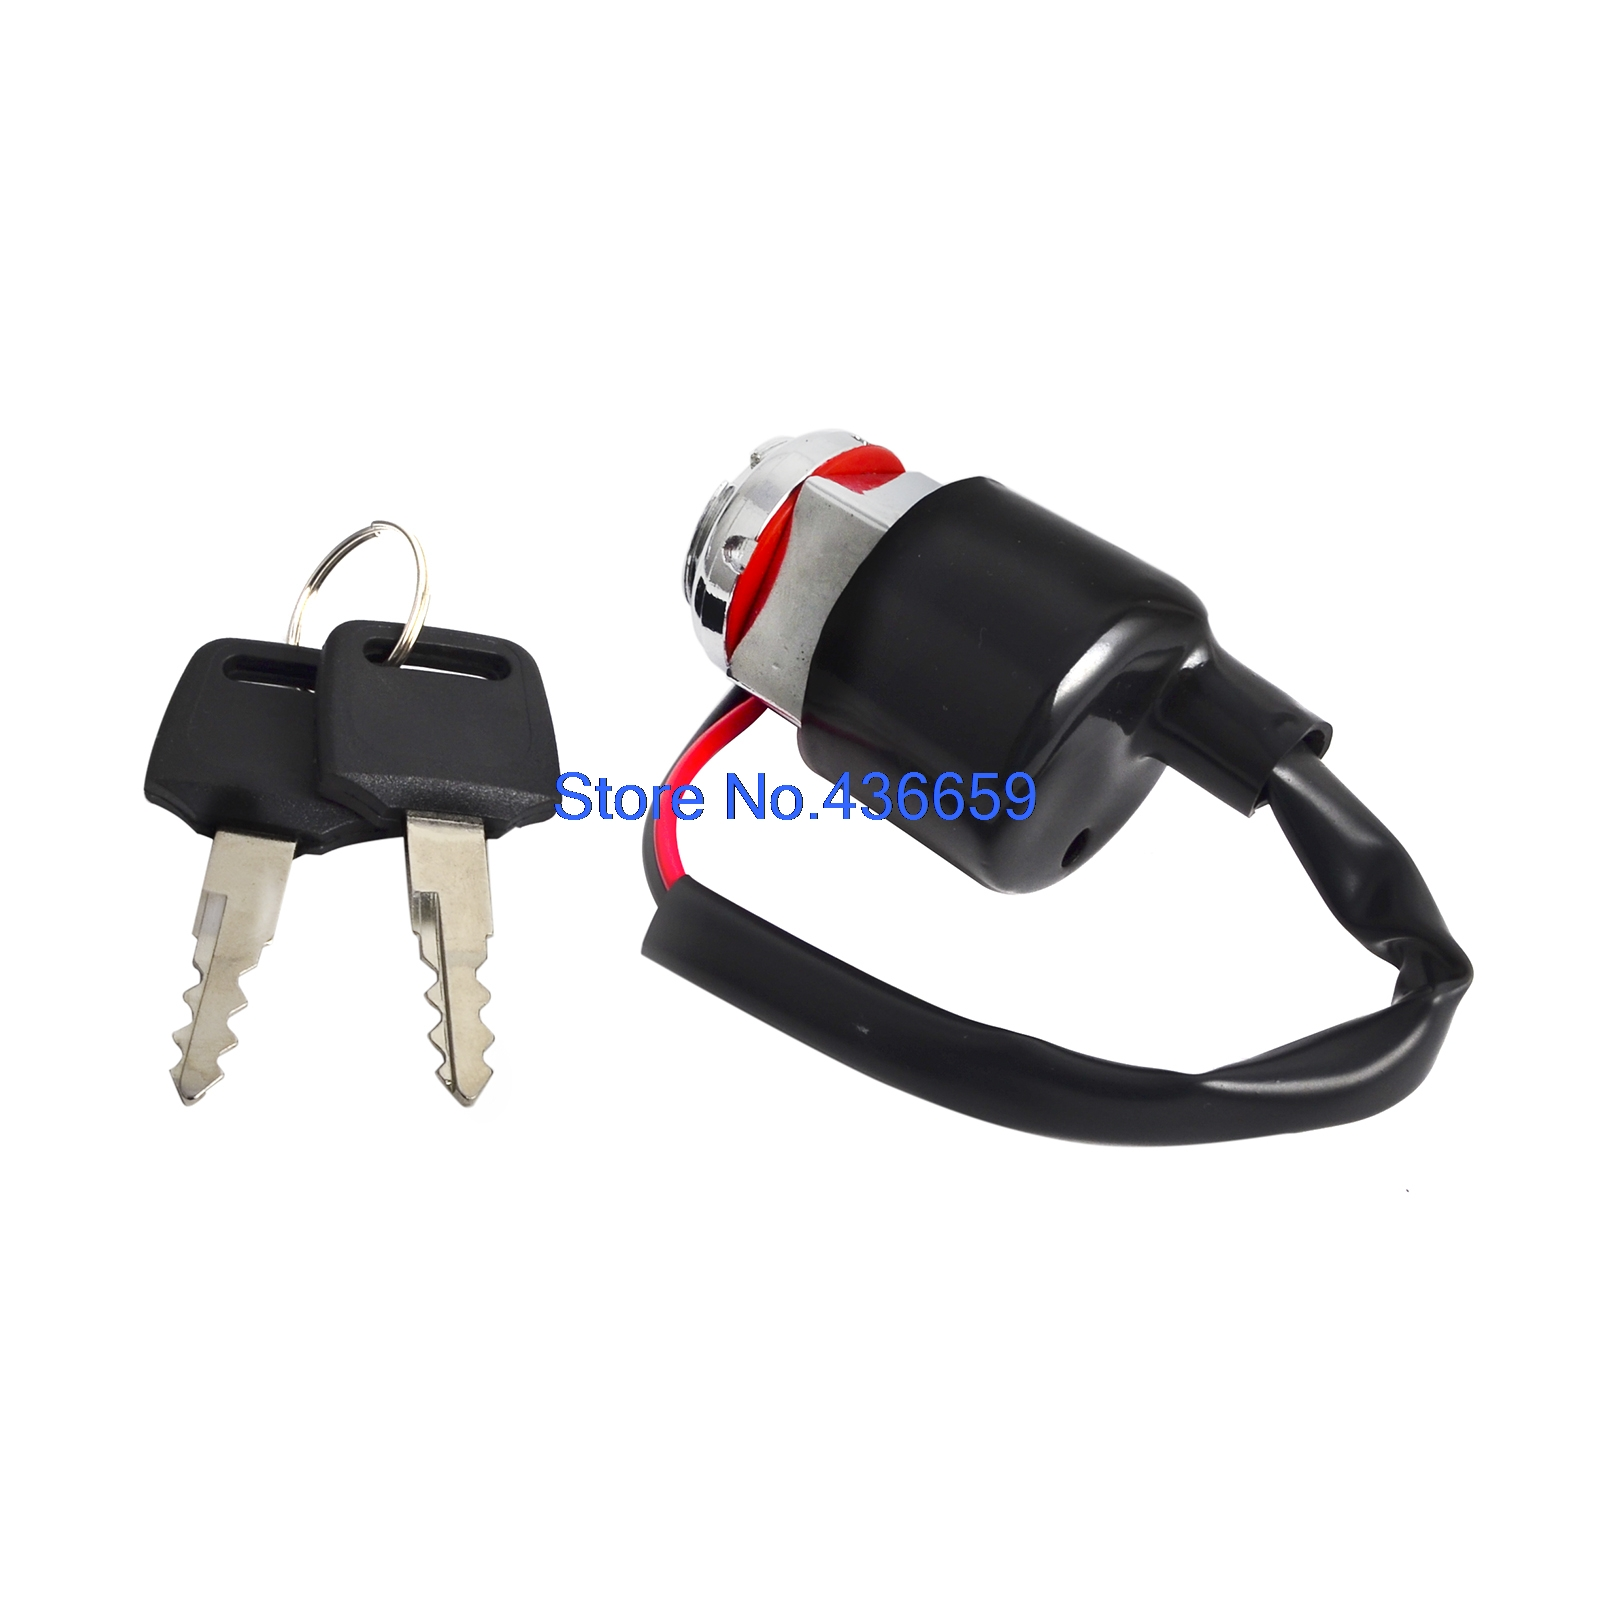 Ignition Switch with 2 Keys 2 Wire For Honda CB100 Super Sport 100 CB125  CL70 CL90 CL100 CL125 SL100 SL125 XL100 S90-in Motorbike Ingition from  Automobiles ...